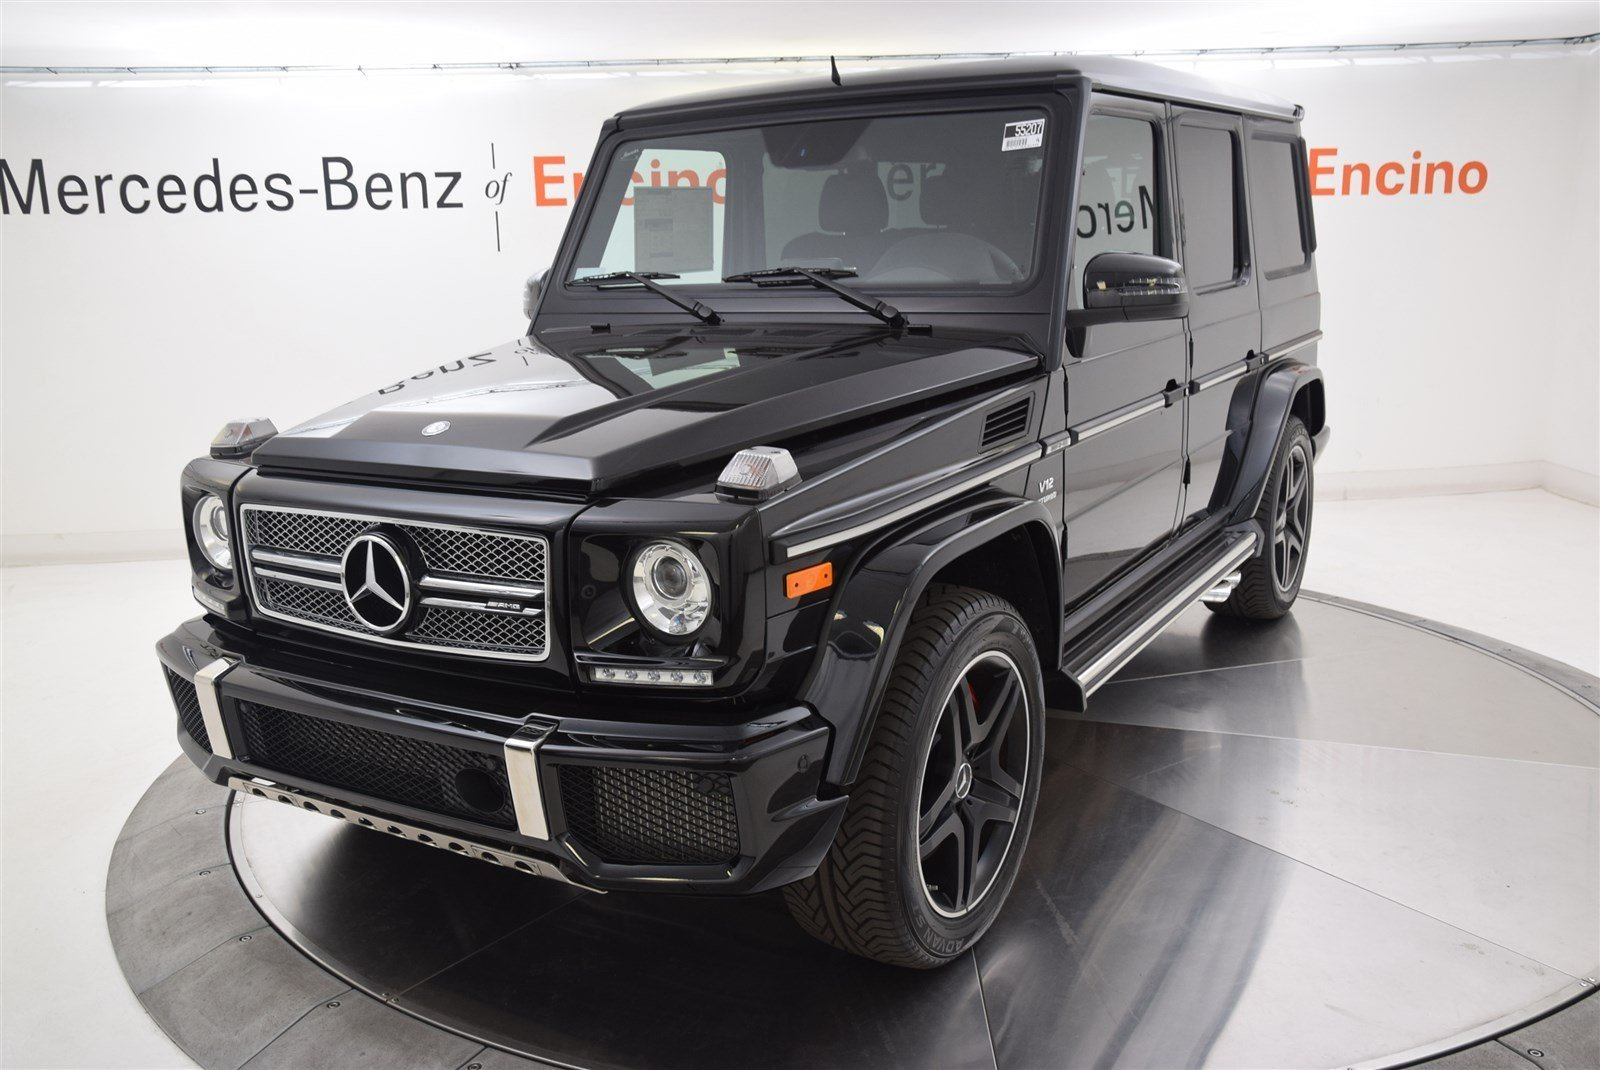 20 awesome mercedes benz g wagon price images mercedes benz wallpaper. Black Bedroom Furniture Sets. Home Design Ideas